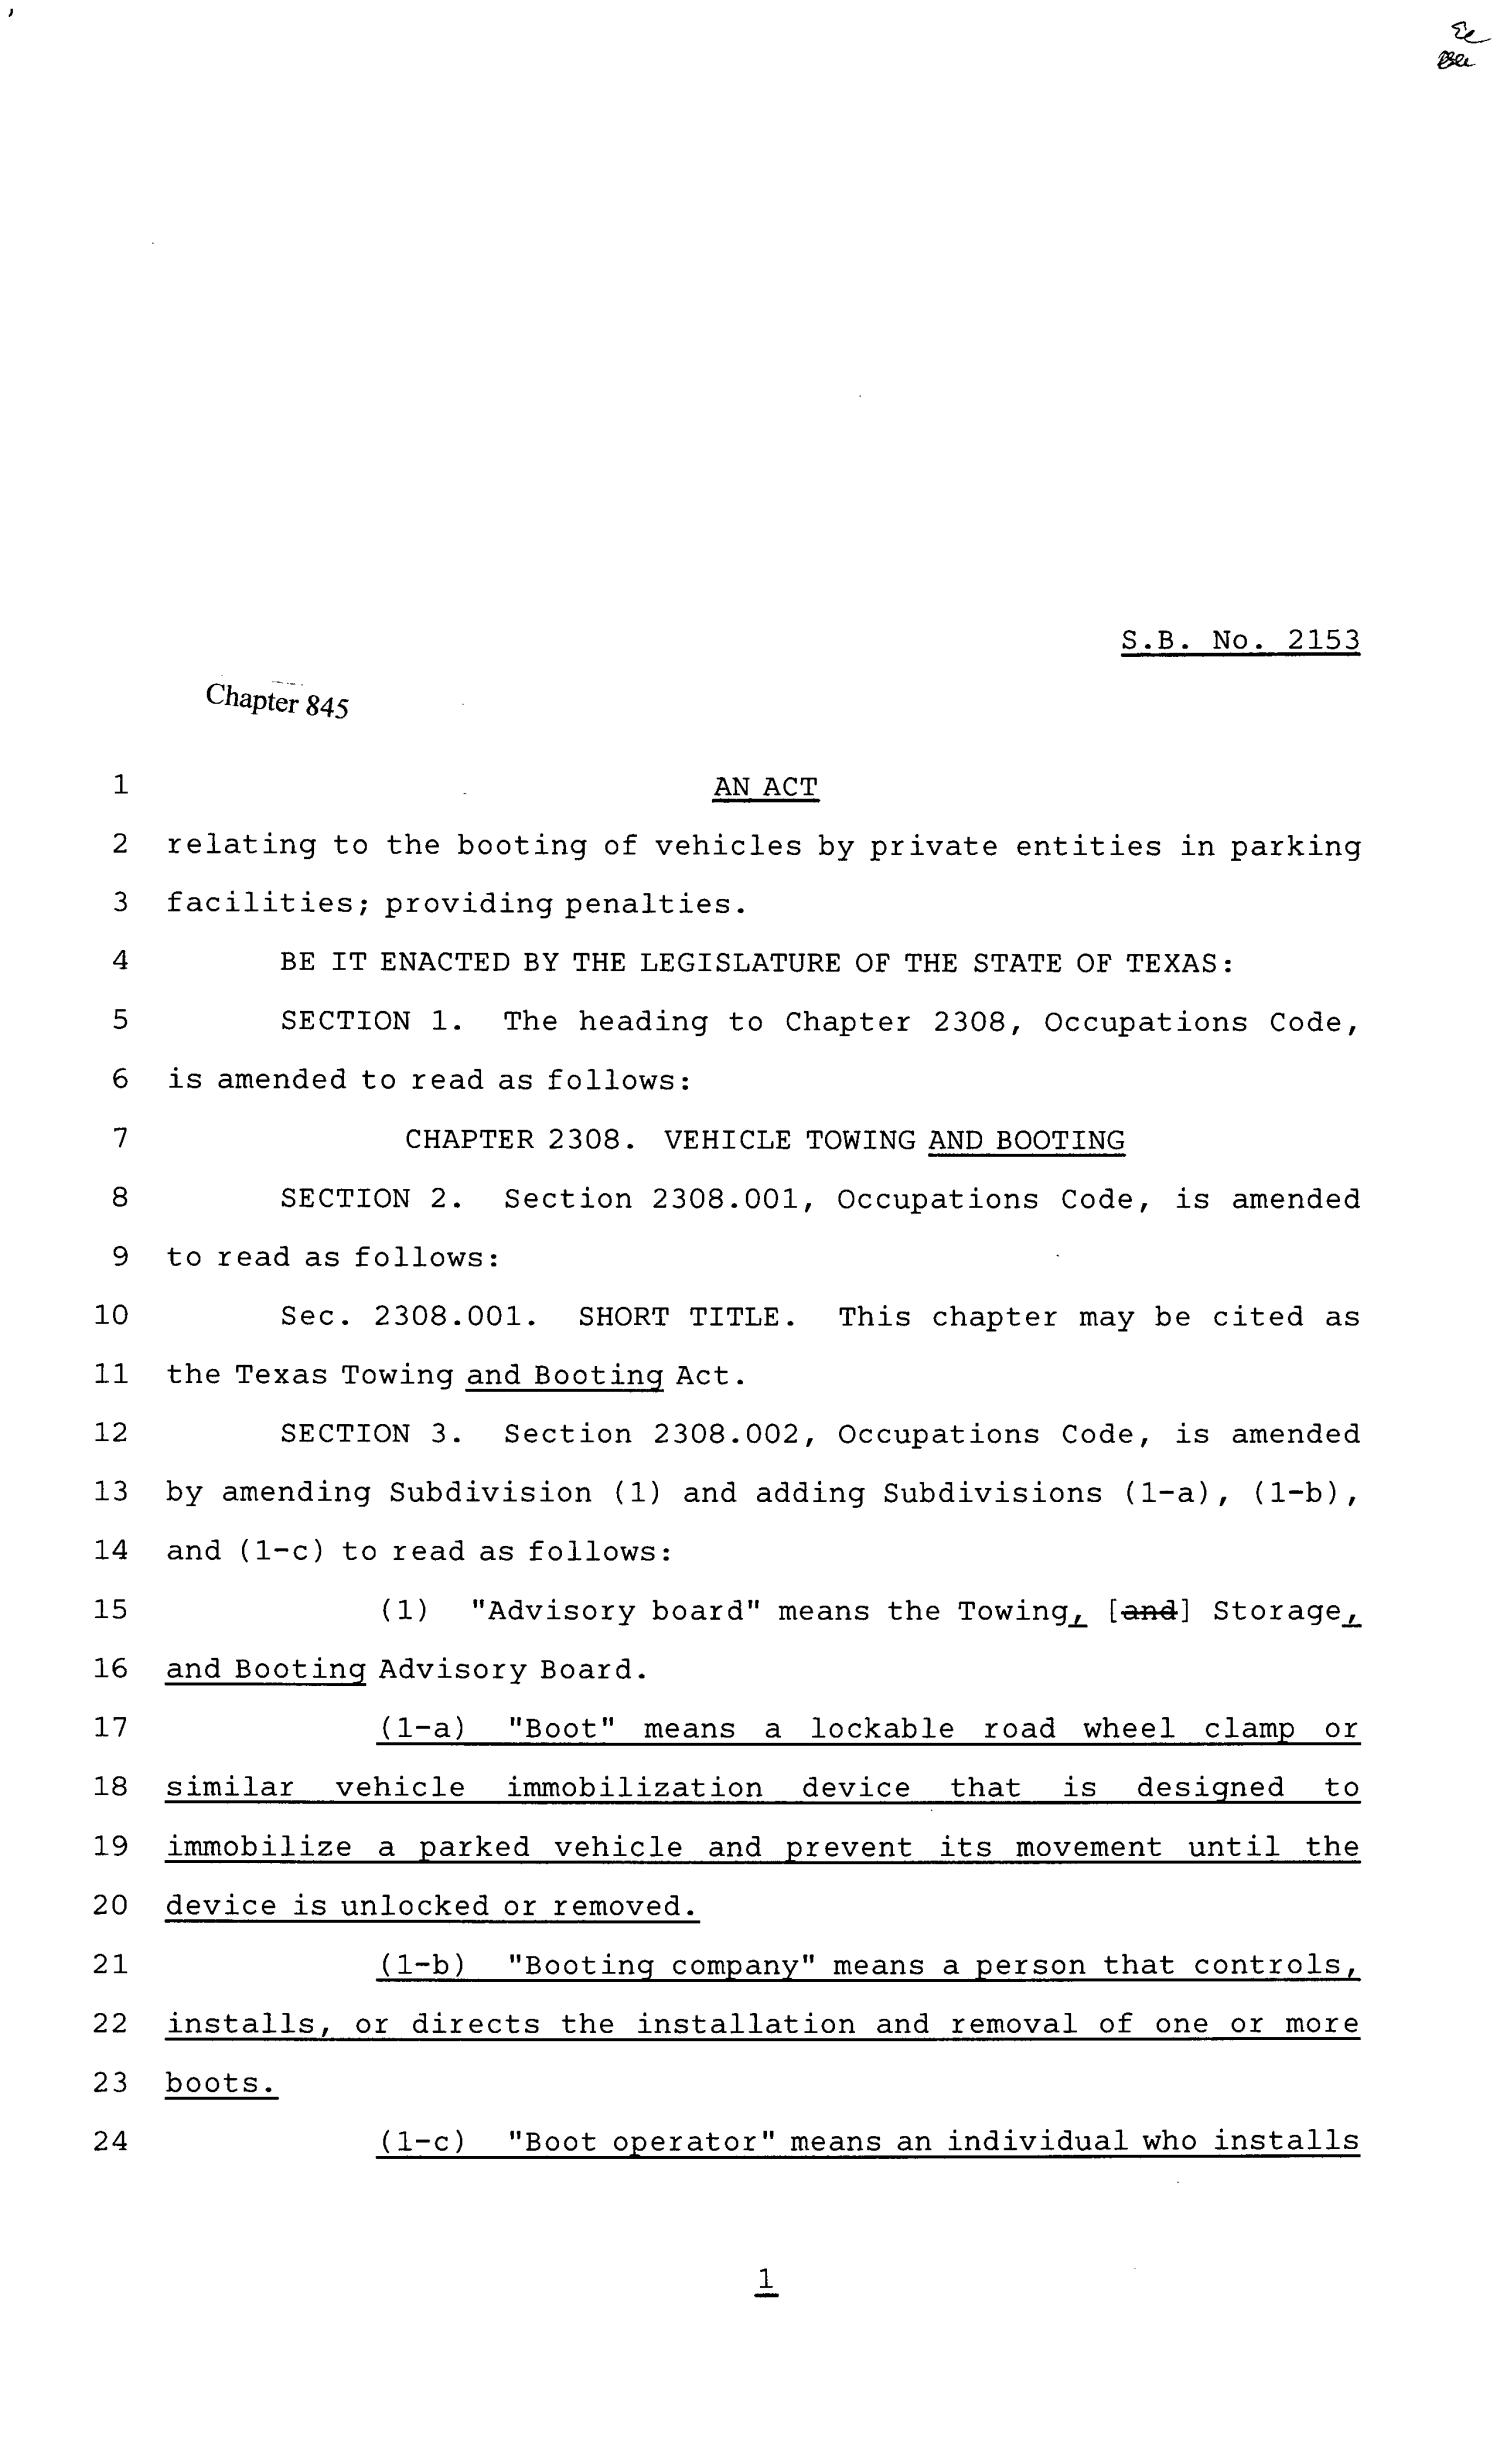 81st Texas Legislature, Senate Bill 2153, Chapter 845                                                                                                      [Sequence #]: 1 of 19